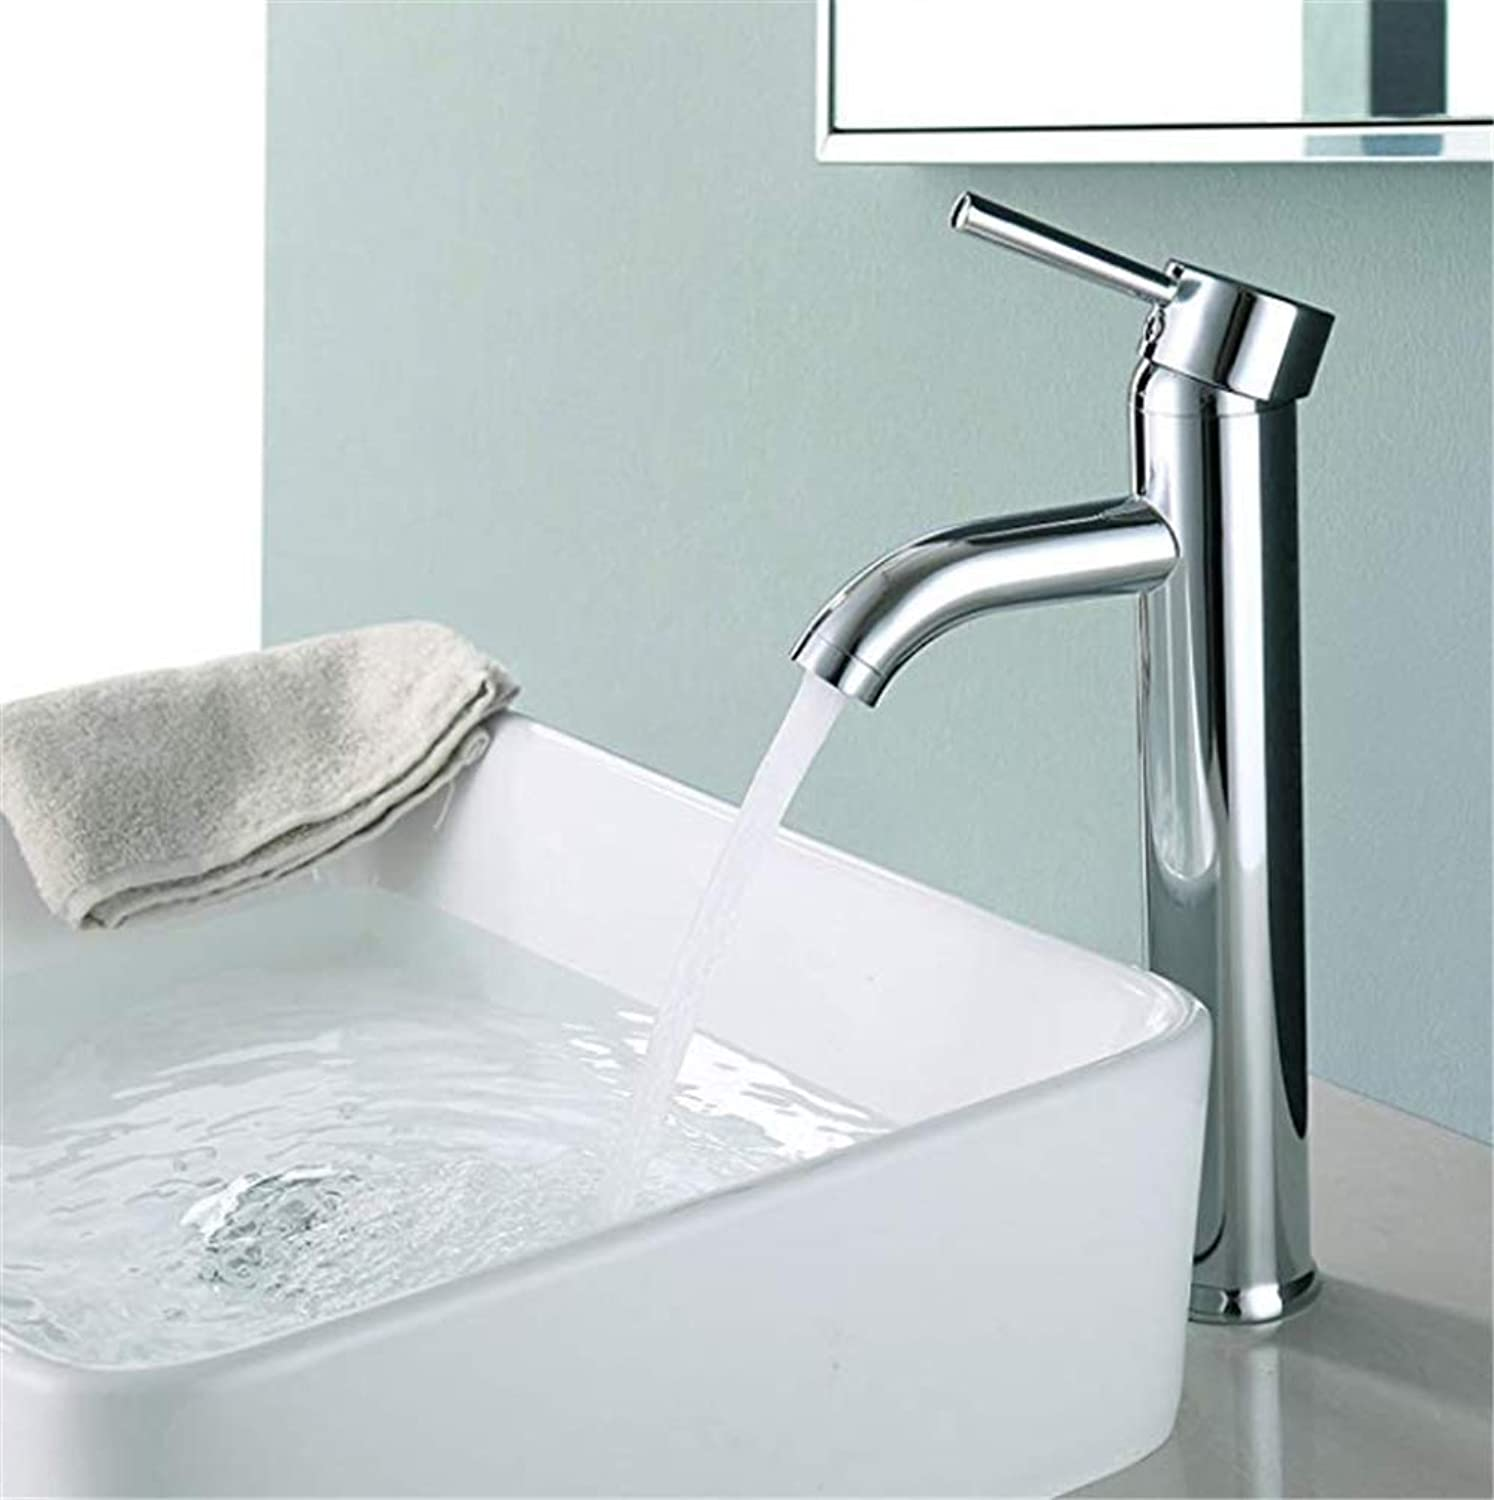 Pull Out The Pull Down Stainless Steelbathroom Single Taps Mono Sink Mixer Tall